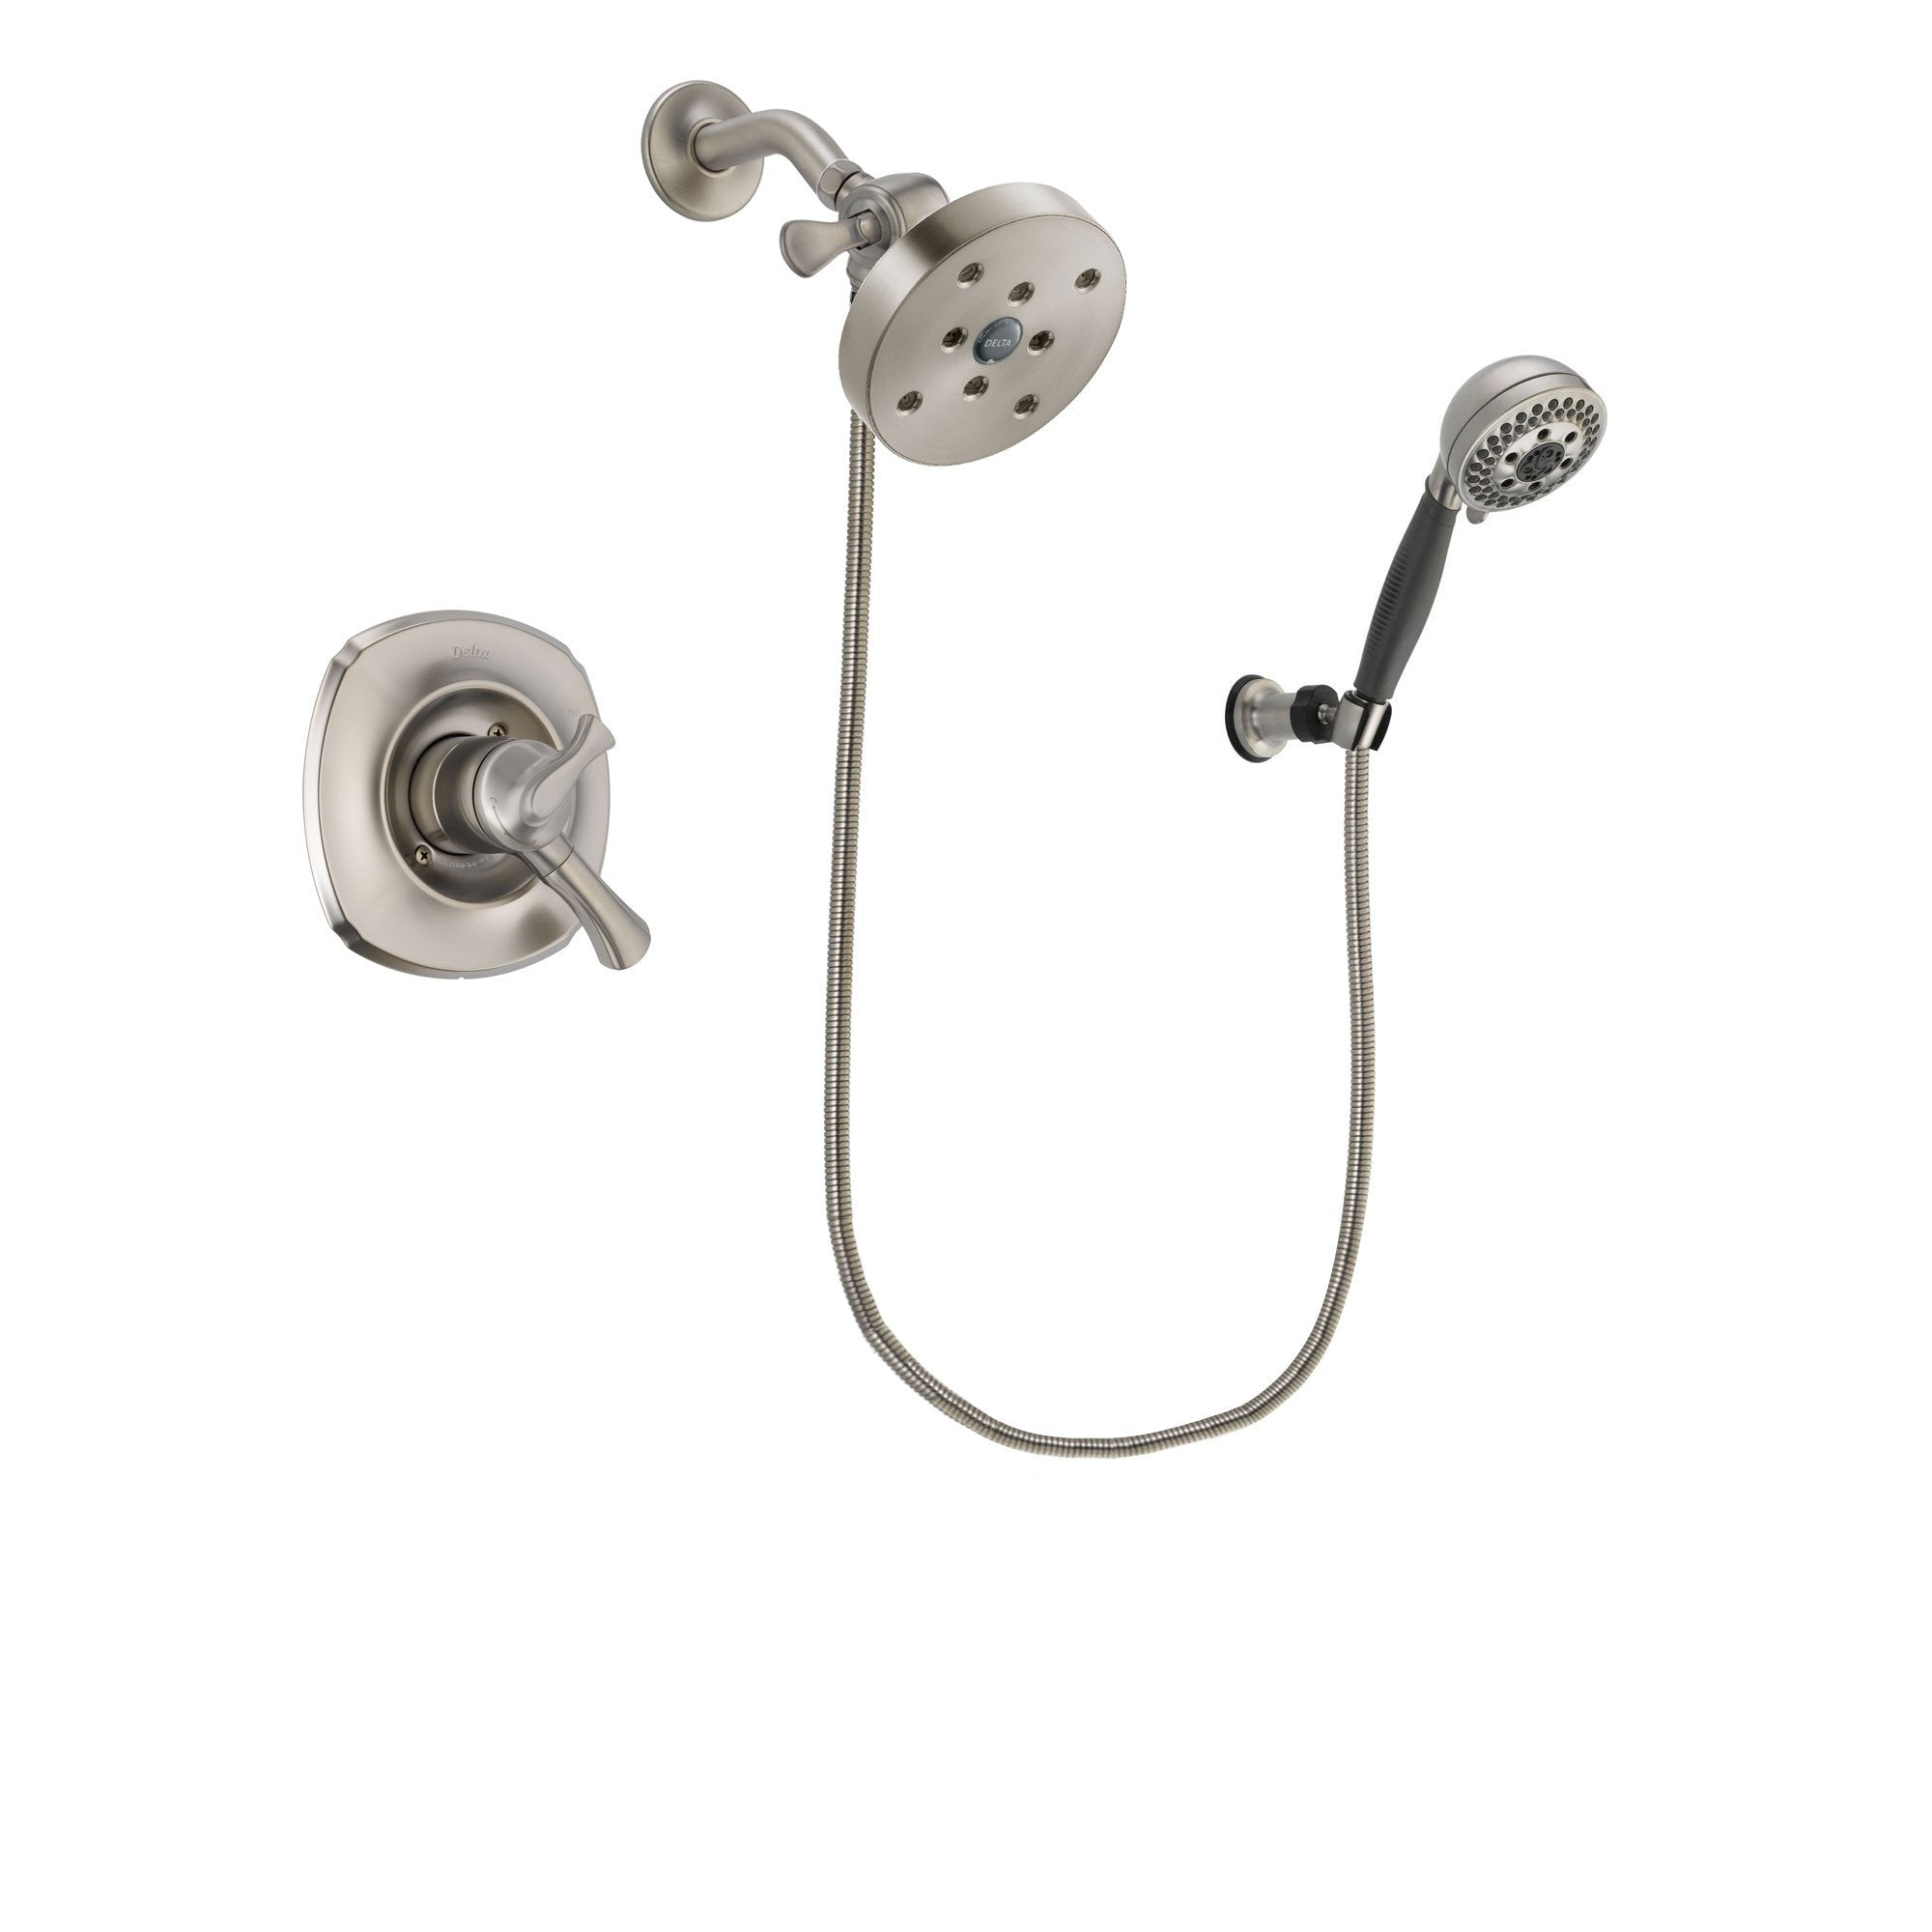 Delta Addison Stainless Steel Finish Shower Faucet System w/Hand Shower DSP2052V